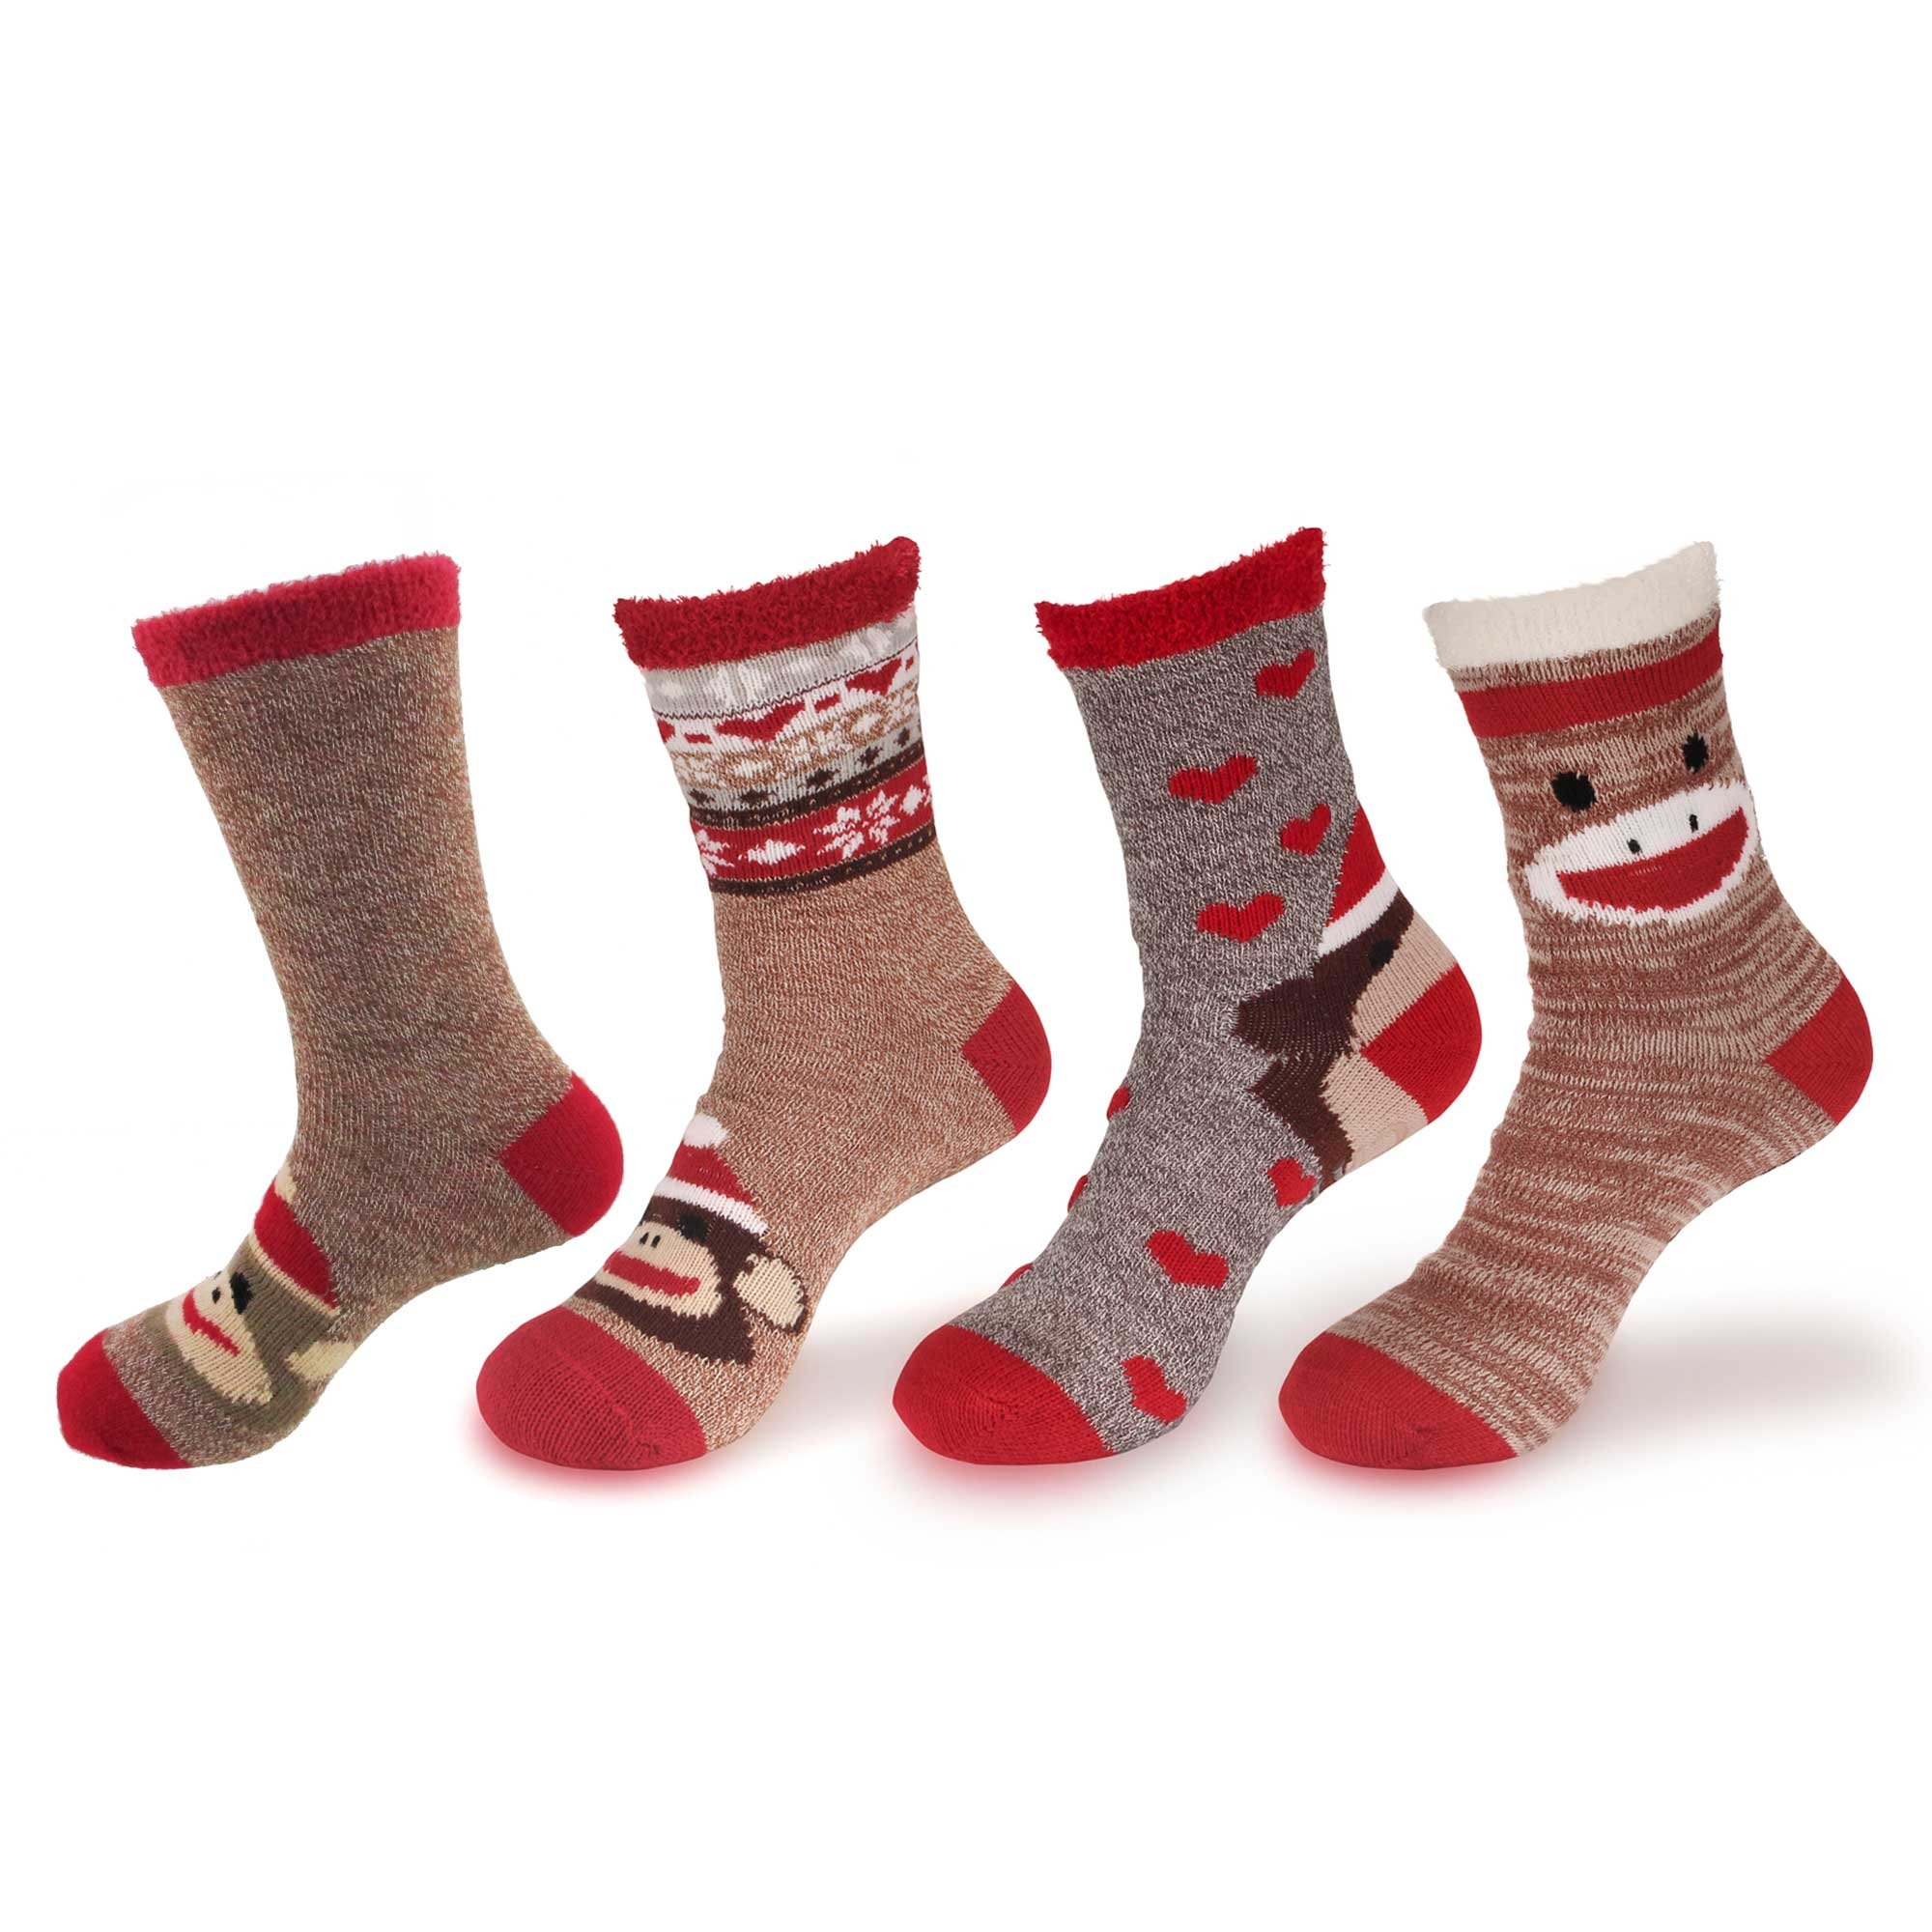 Animal Double Layer Extra Thick Soft Warm Fuzzy Non-Skid Crew Socks - 4 Pairs, Assortment D